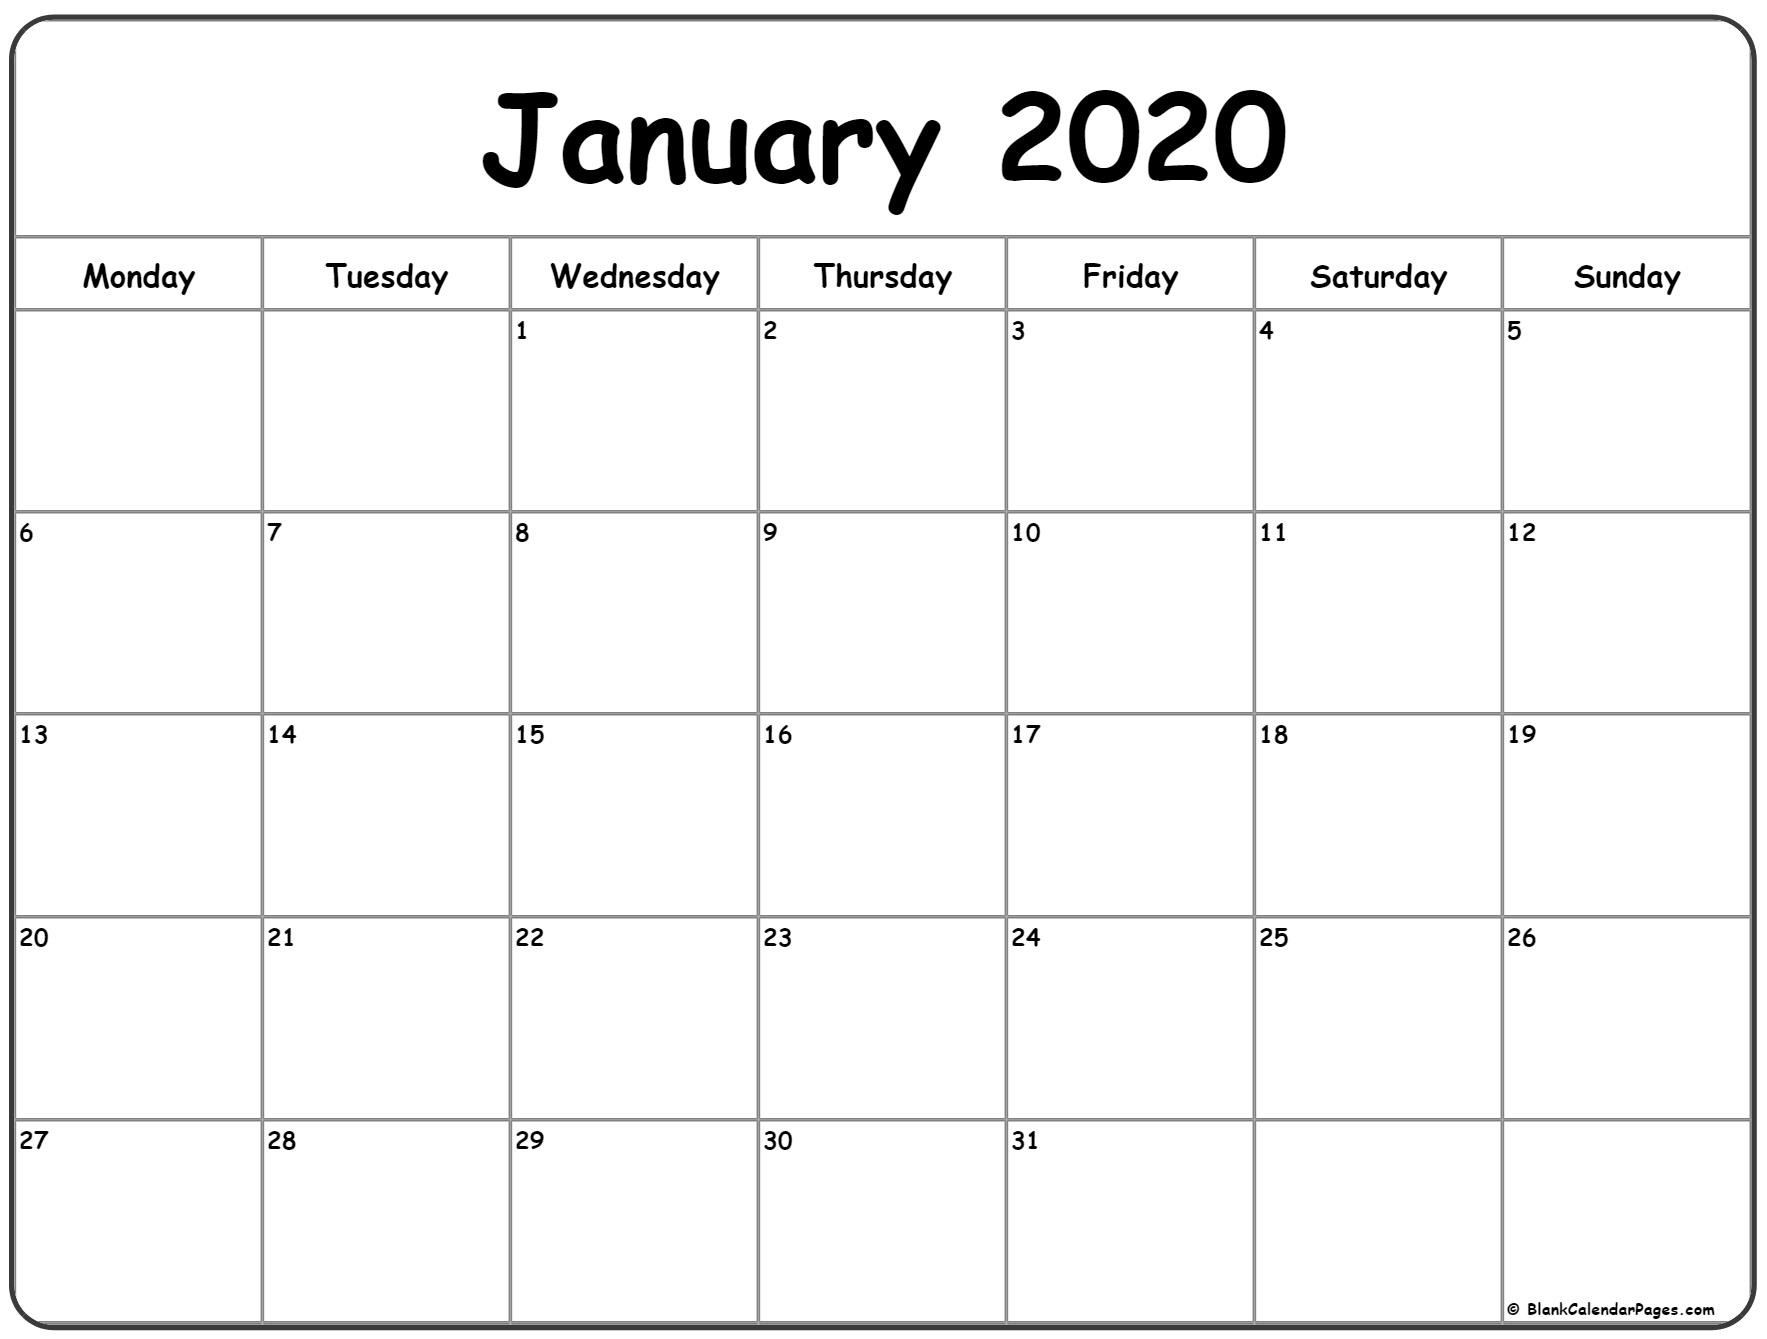 January 2020 Monday Calendar | Monday To Sunday-2020 Monday To Friday Schedule Template